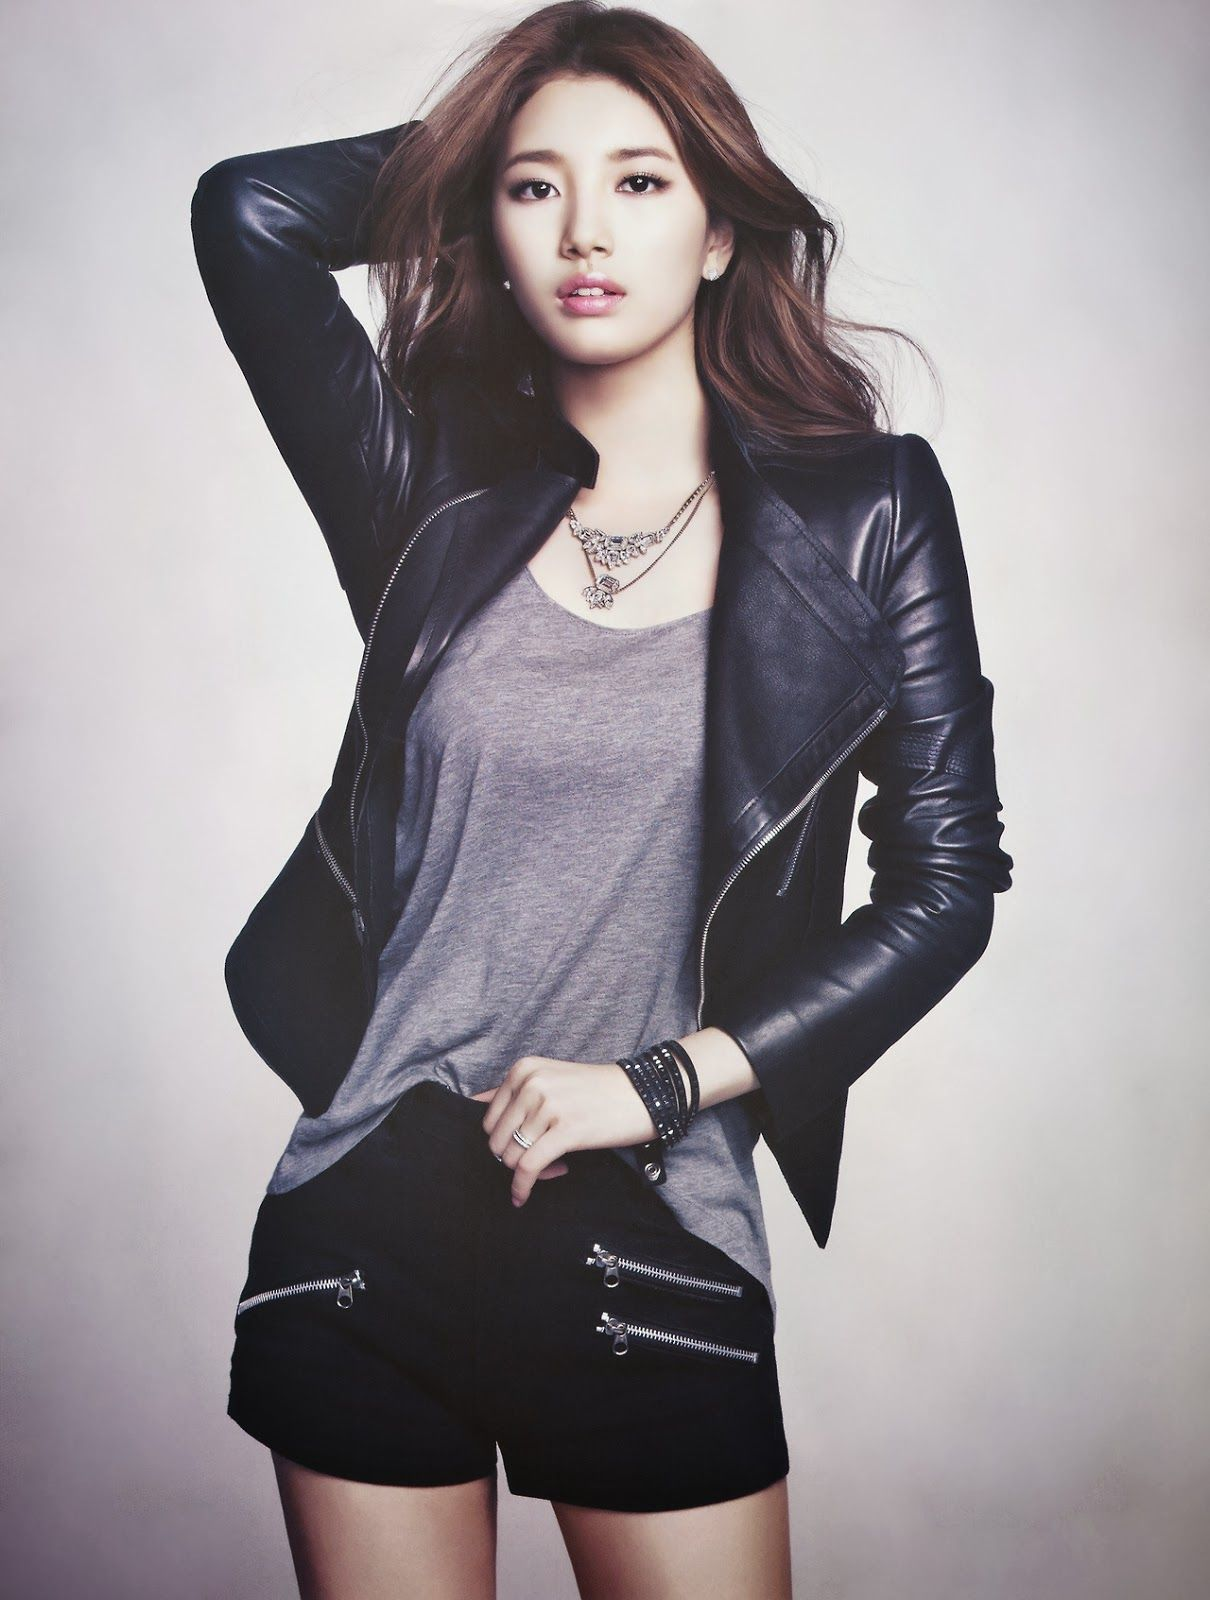 suzy hair style miss a suzy motorcycle look in suzy miss a 5027